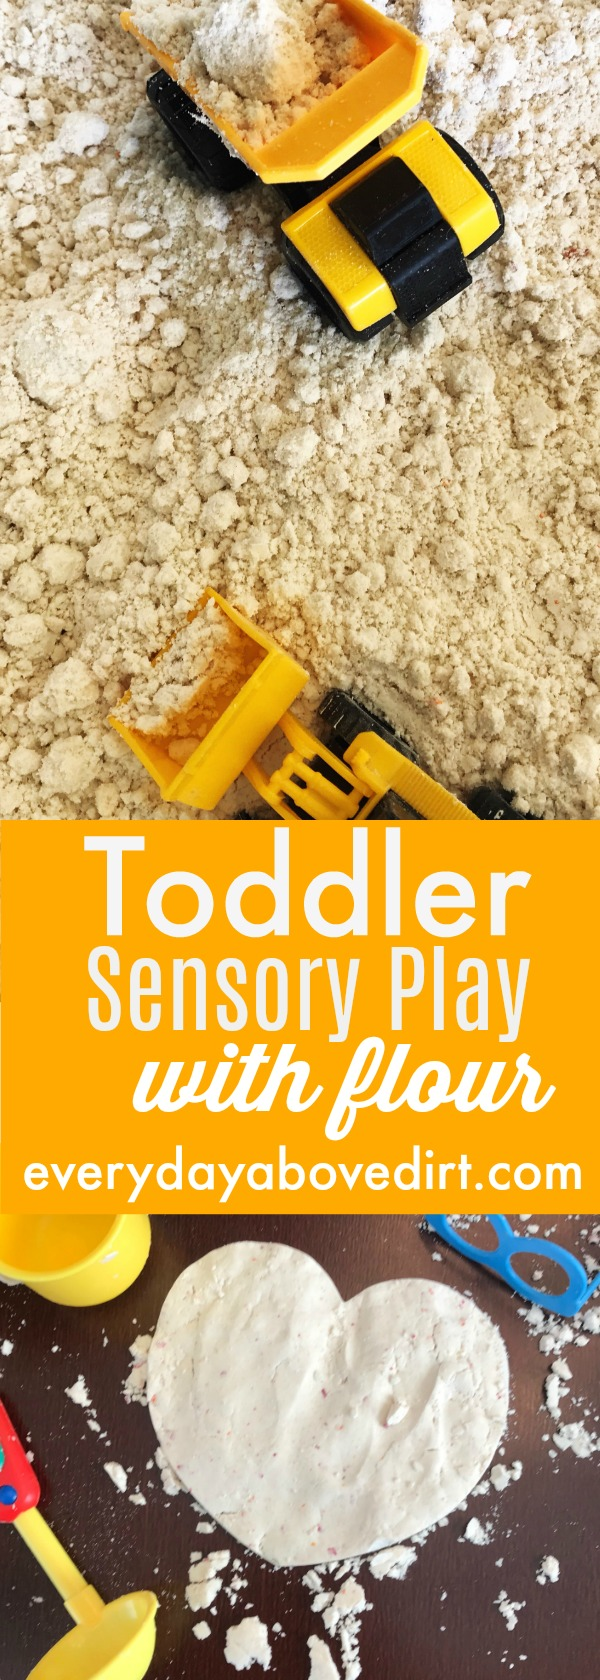 toddler sensory play